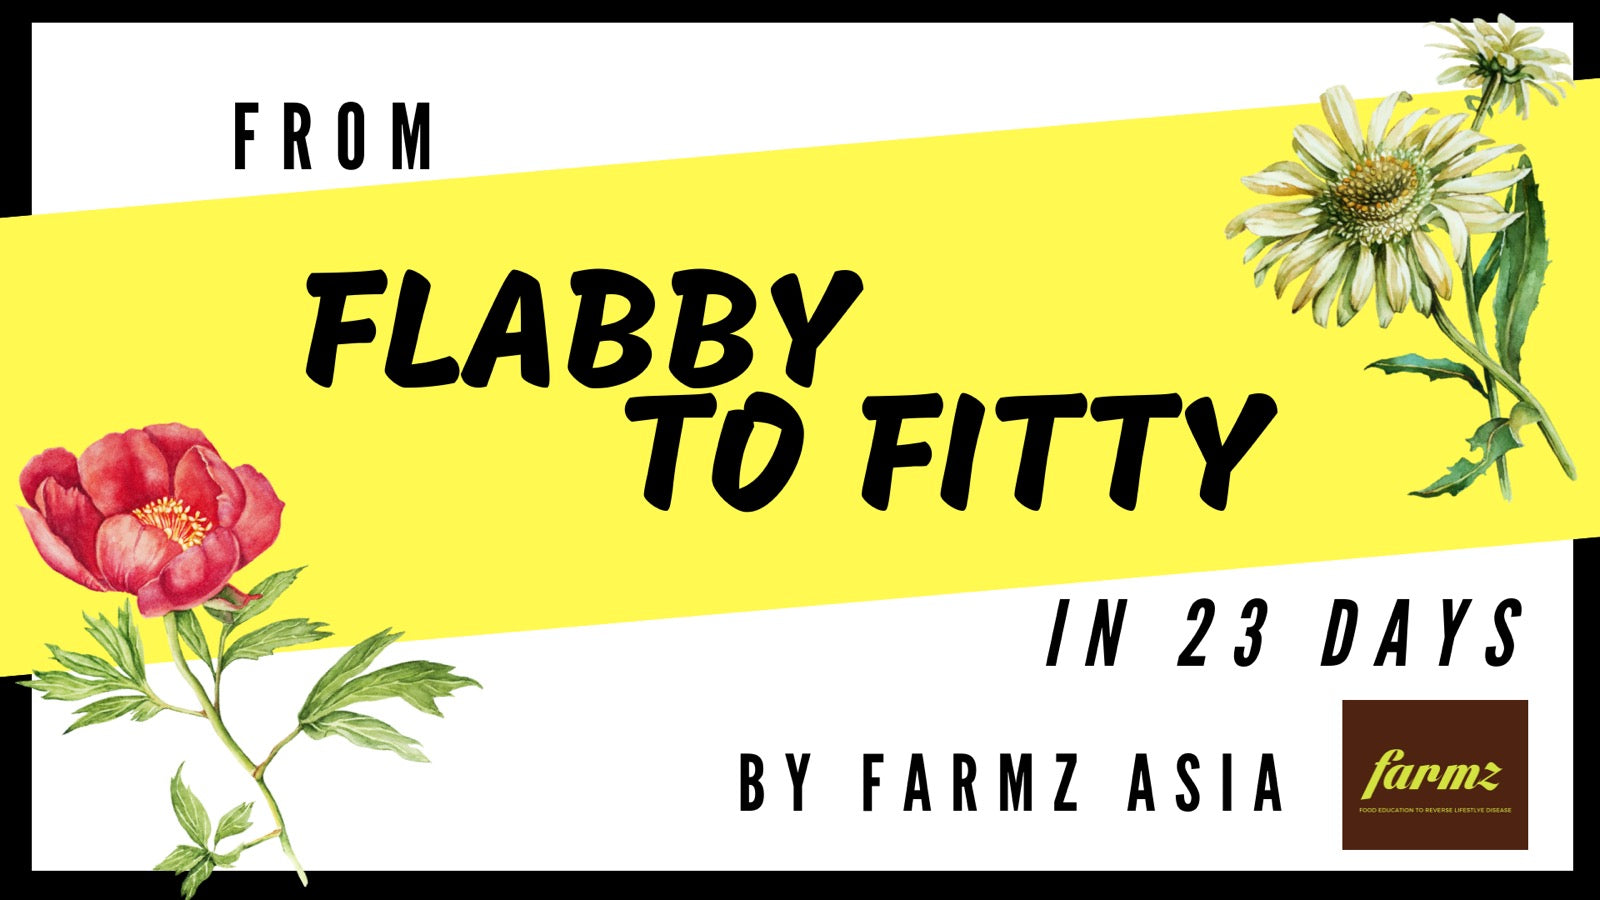 From Flabby to Fitty in 23 Days Essential Class - Farmz